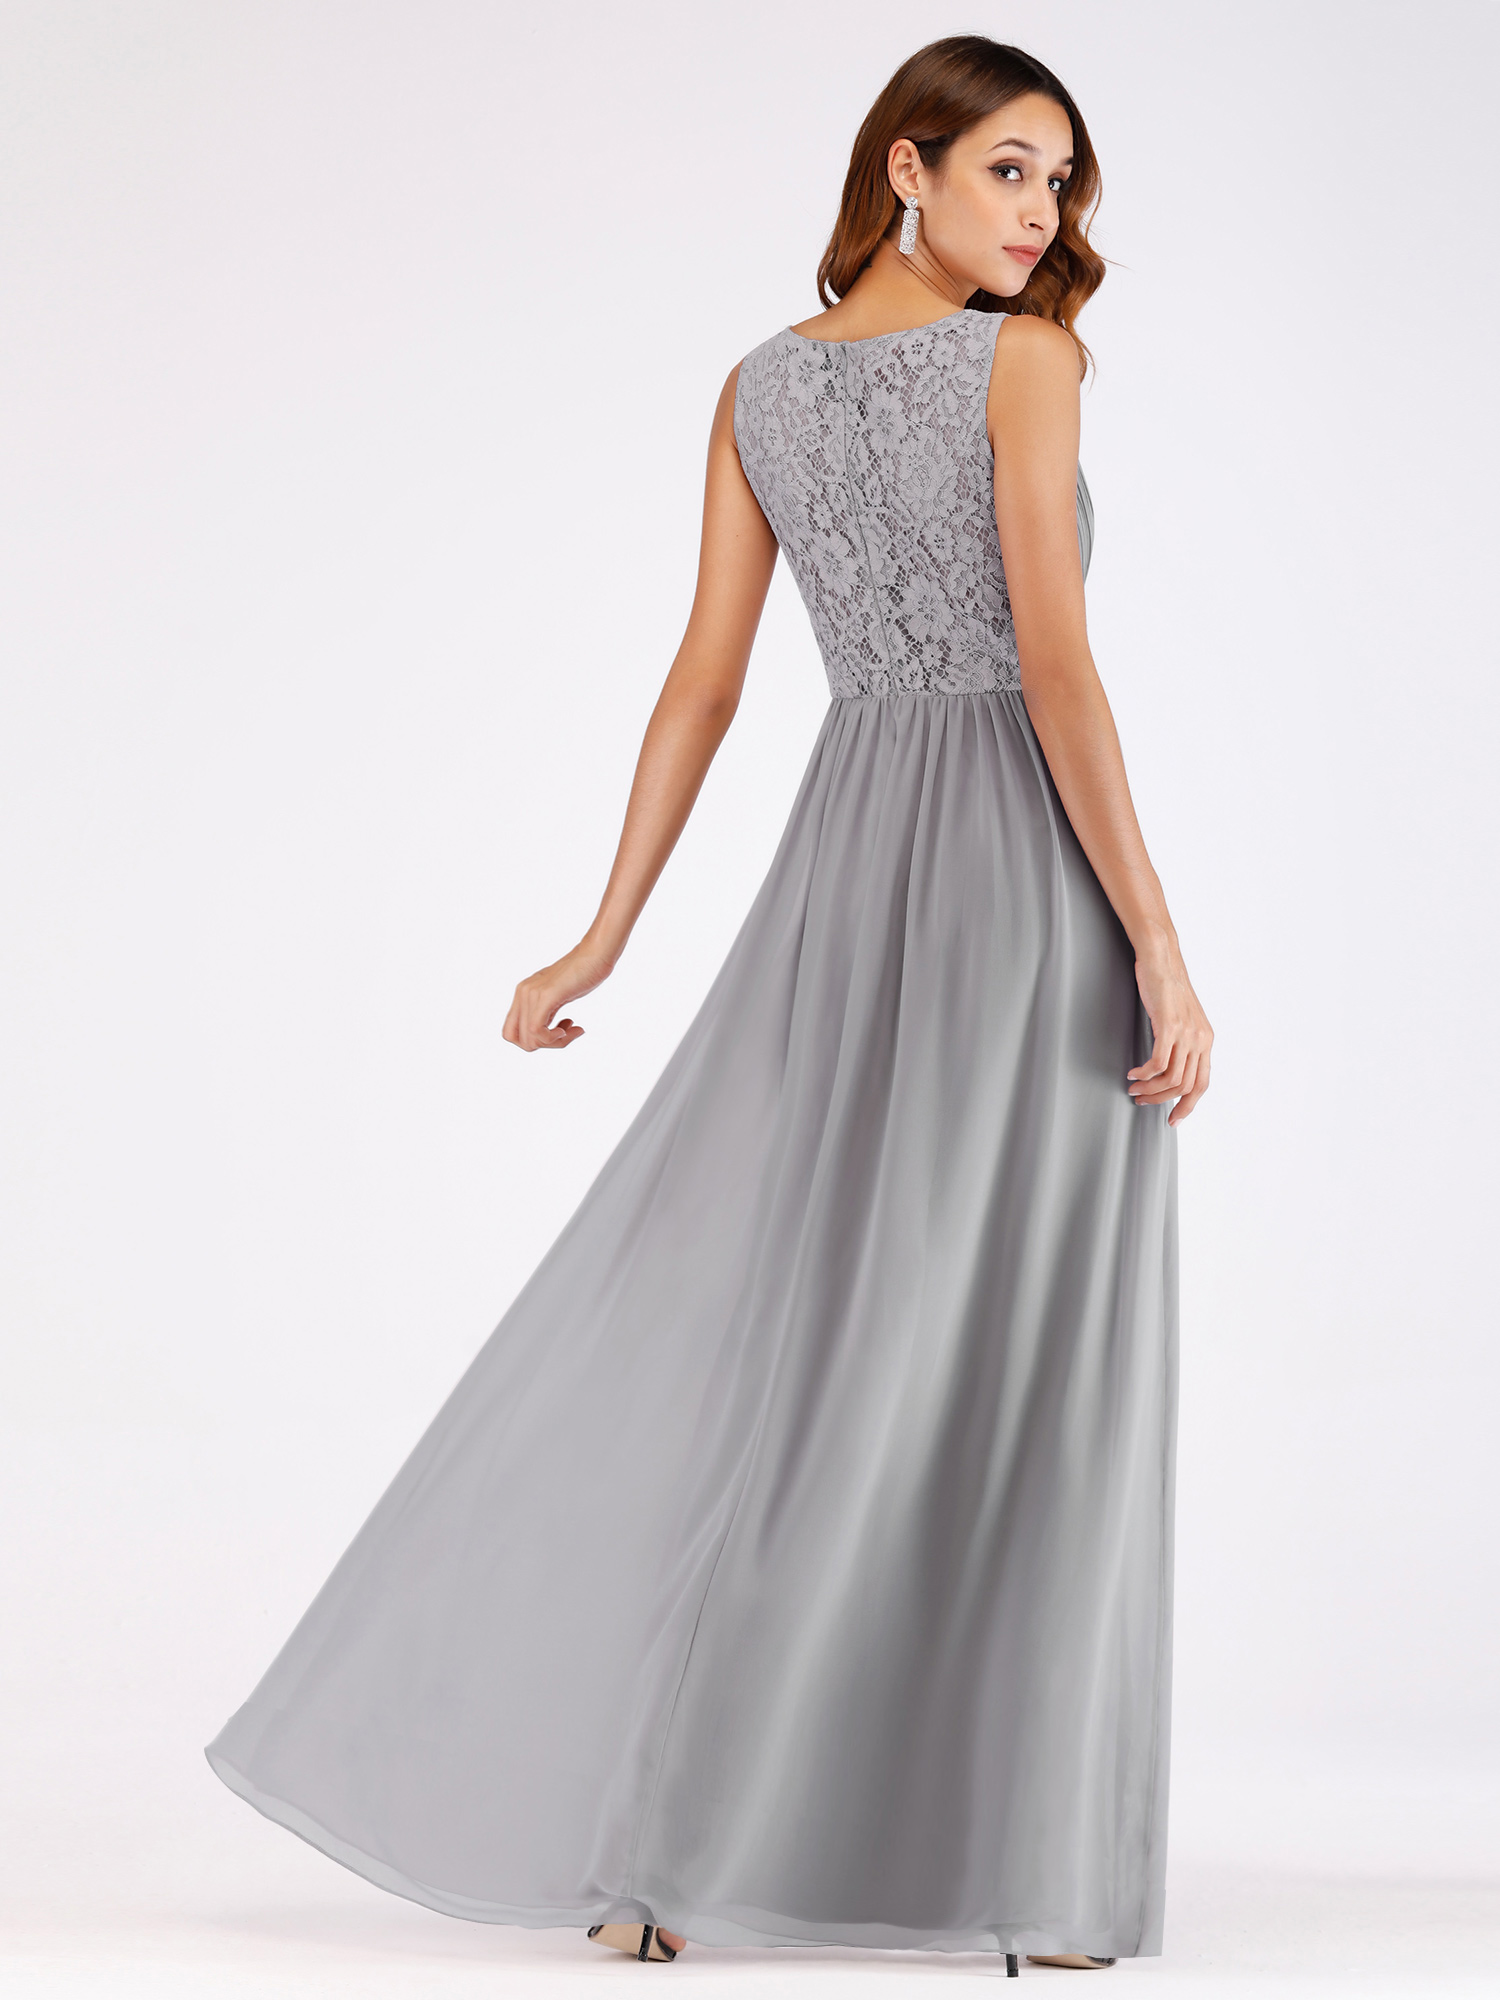 Ever-Pretty-V-Neck-Chiffon-Party-Dresses-Long-A-Line-Bridesmaid-Dress-Grey-07549 thumbnail 7